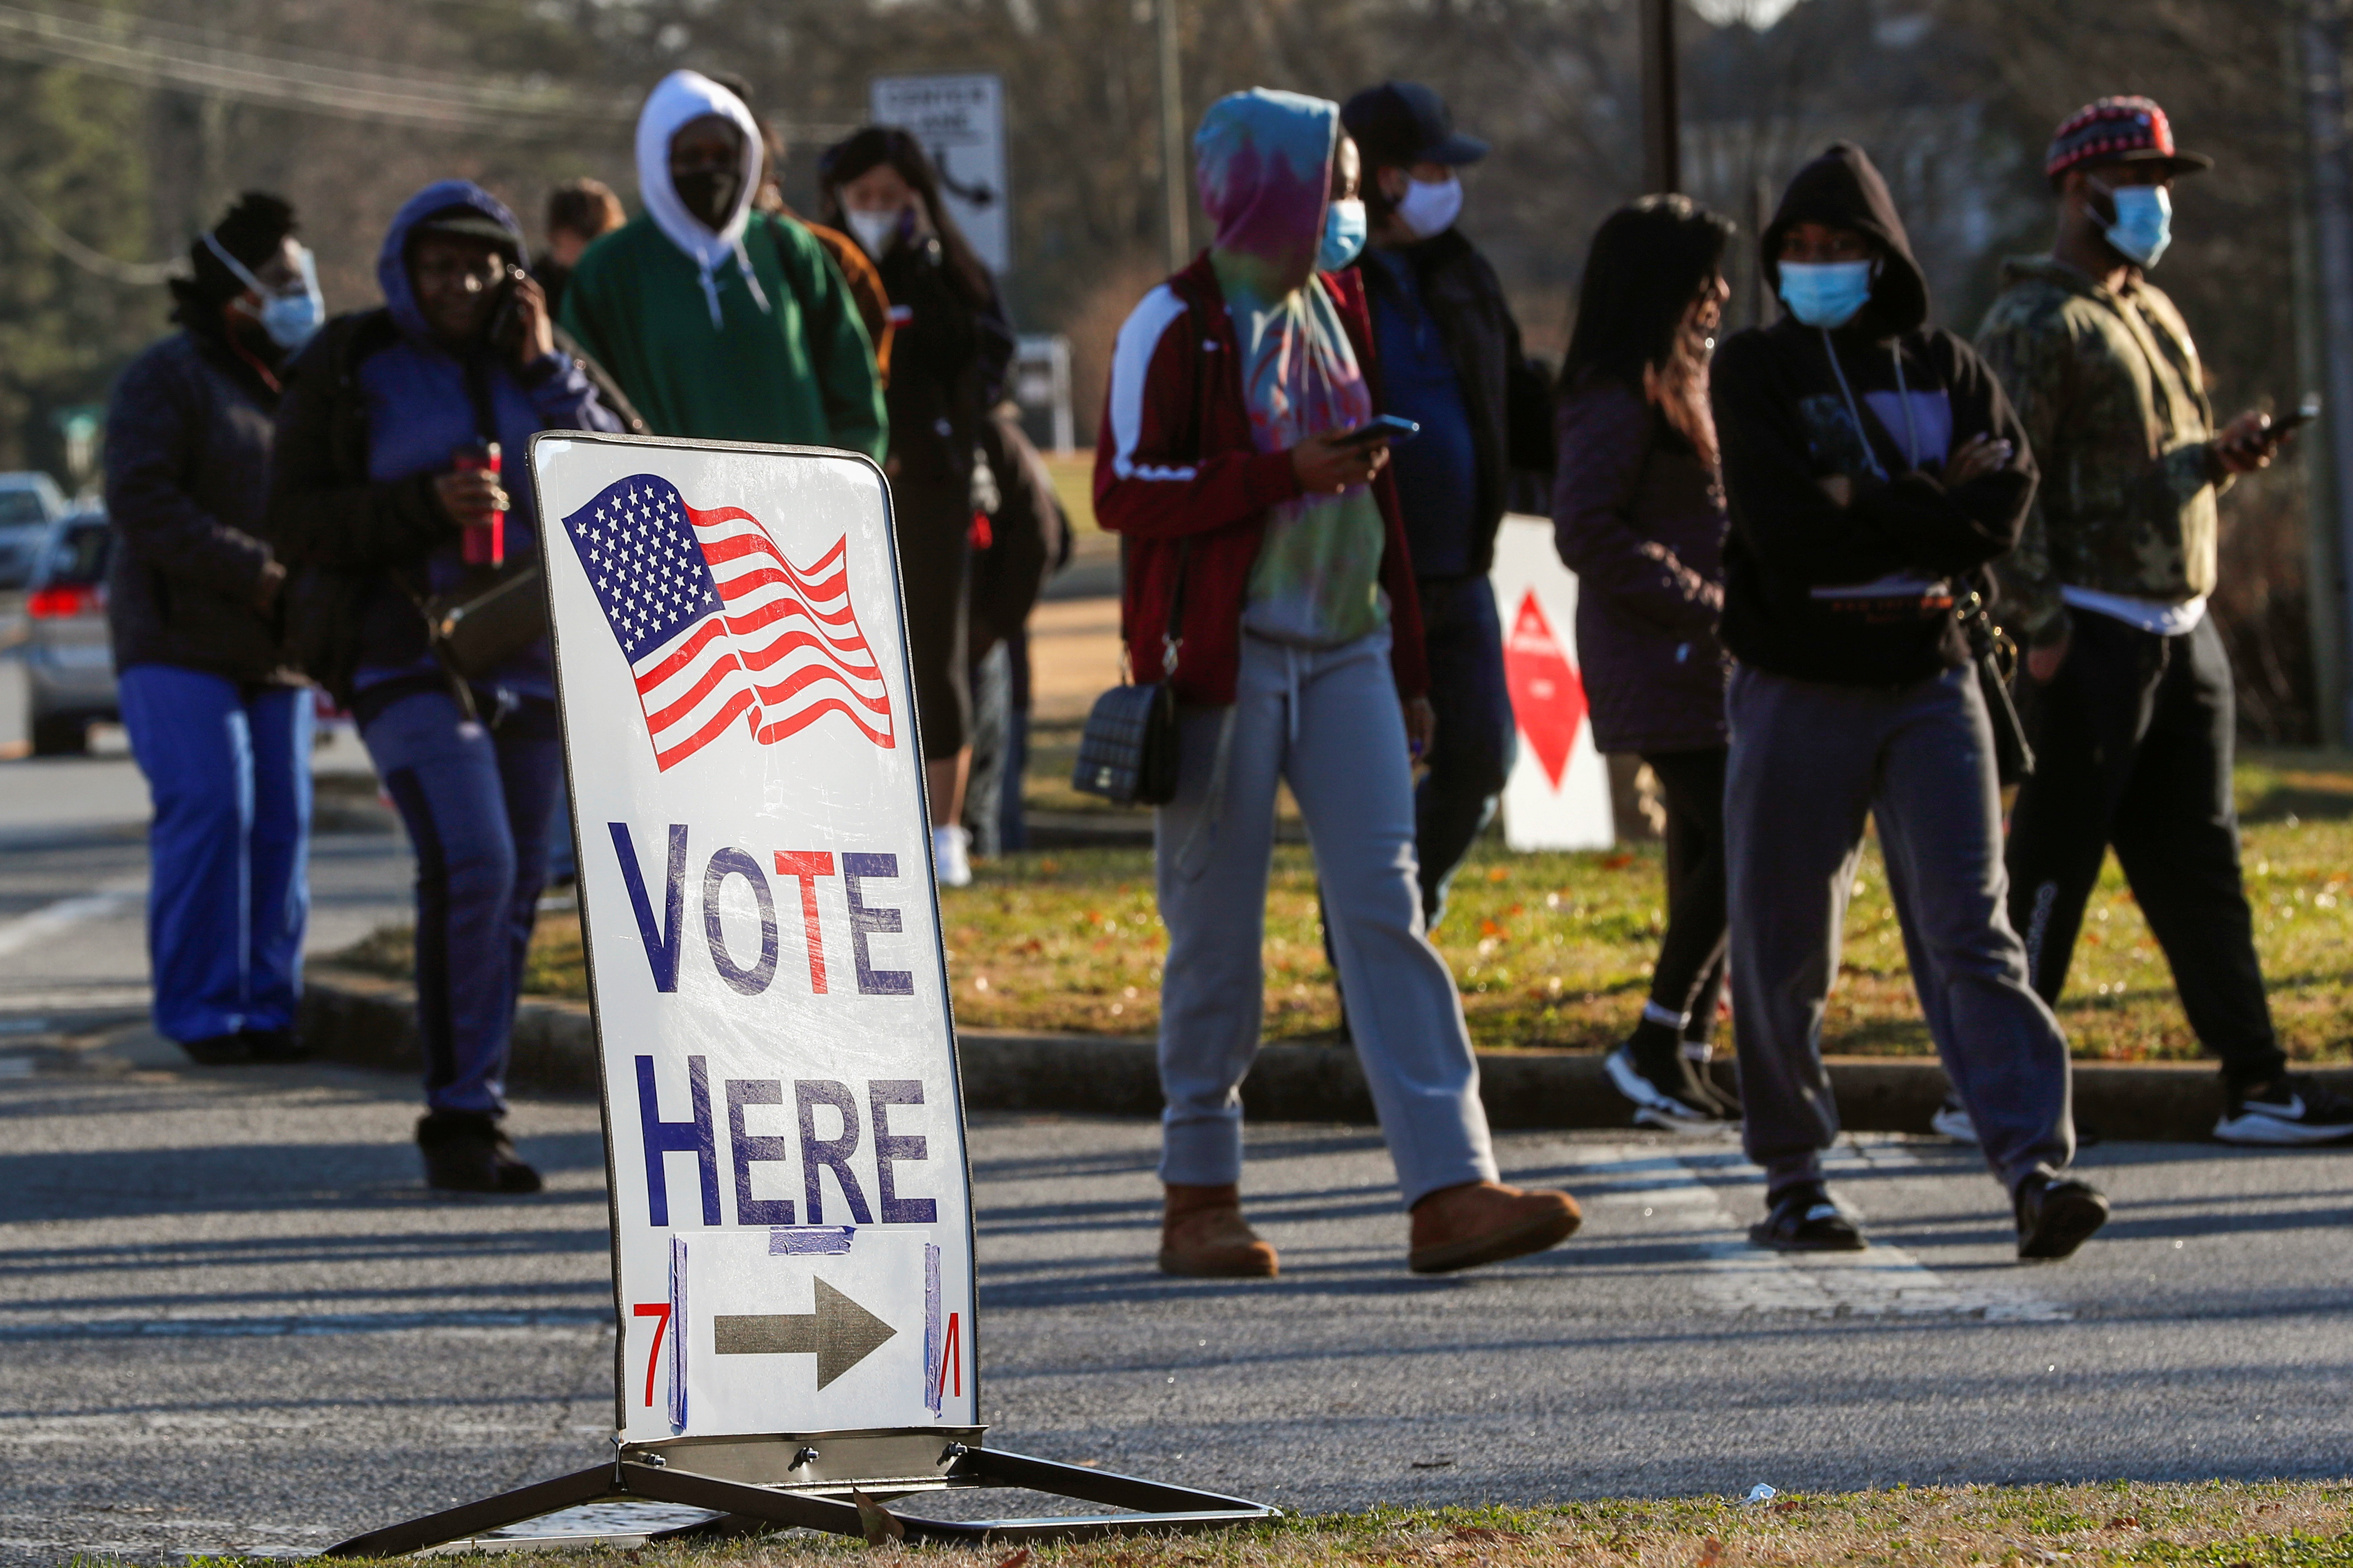 A sign is seen as voters line up for the U.S. Senate run-off election, at a polling location in Marietta, Georgia, U.S., January 5, 2021. REUTERS/Mike Segar